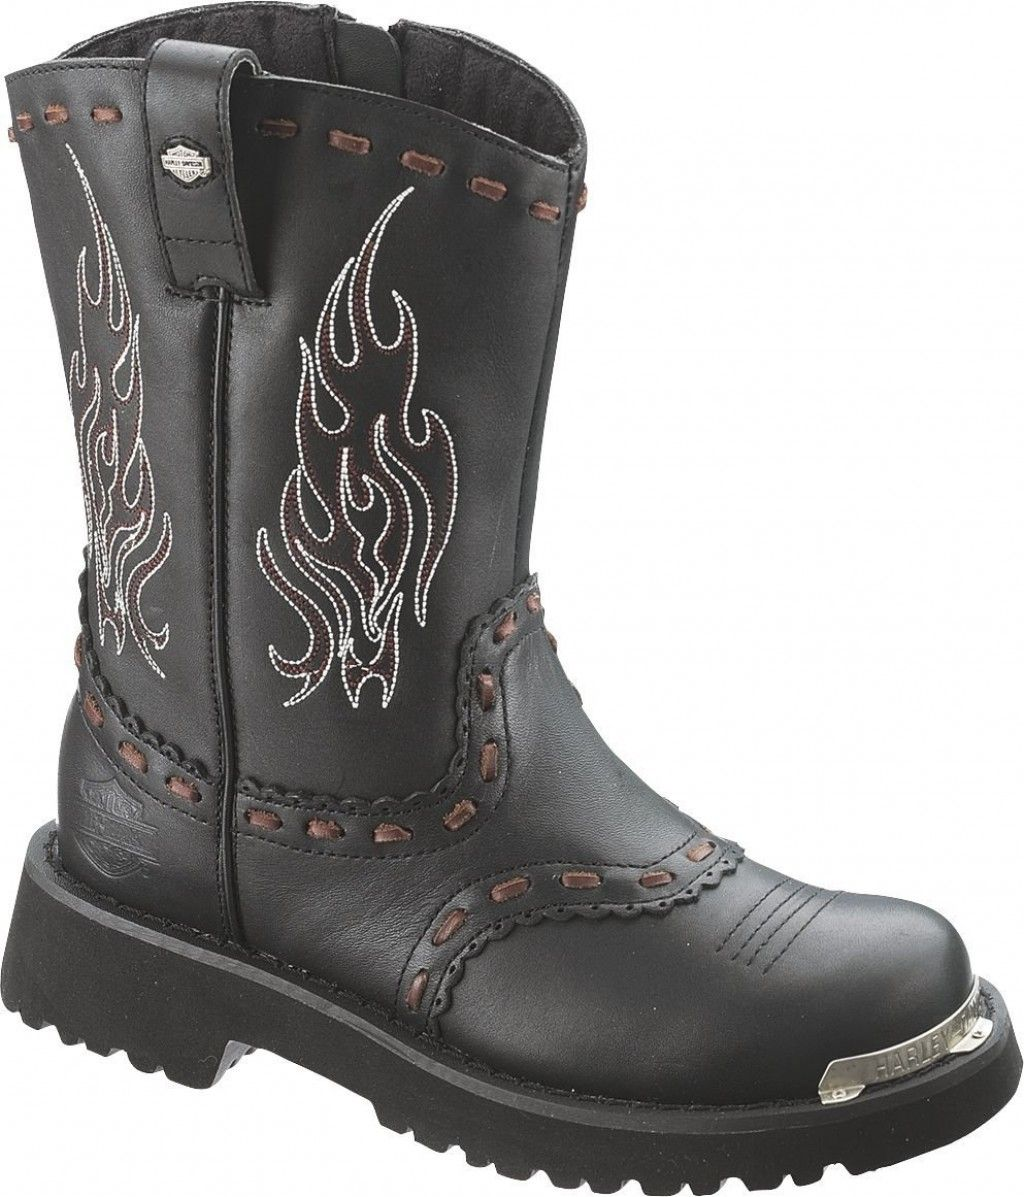 Women s Harley Davidson Boots  Step into a Legend!   I Want   Harley ... fe5199b945